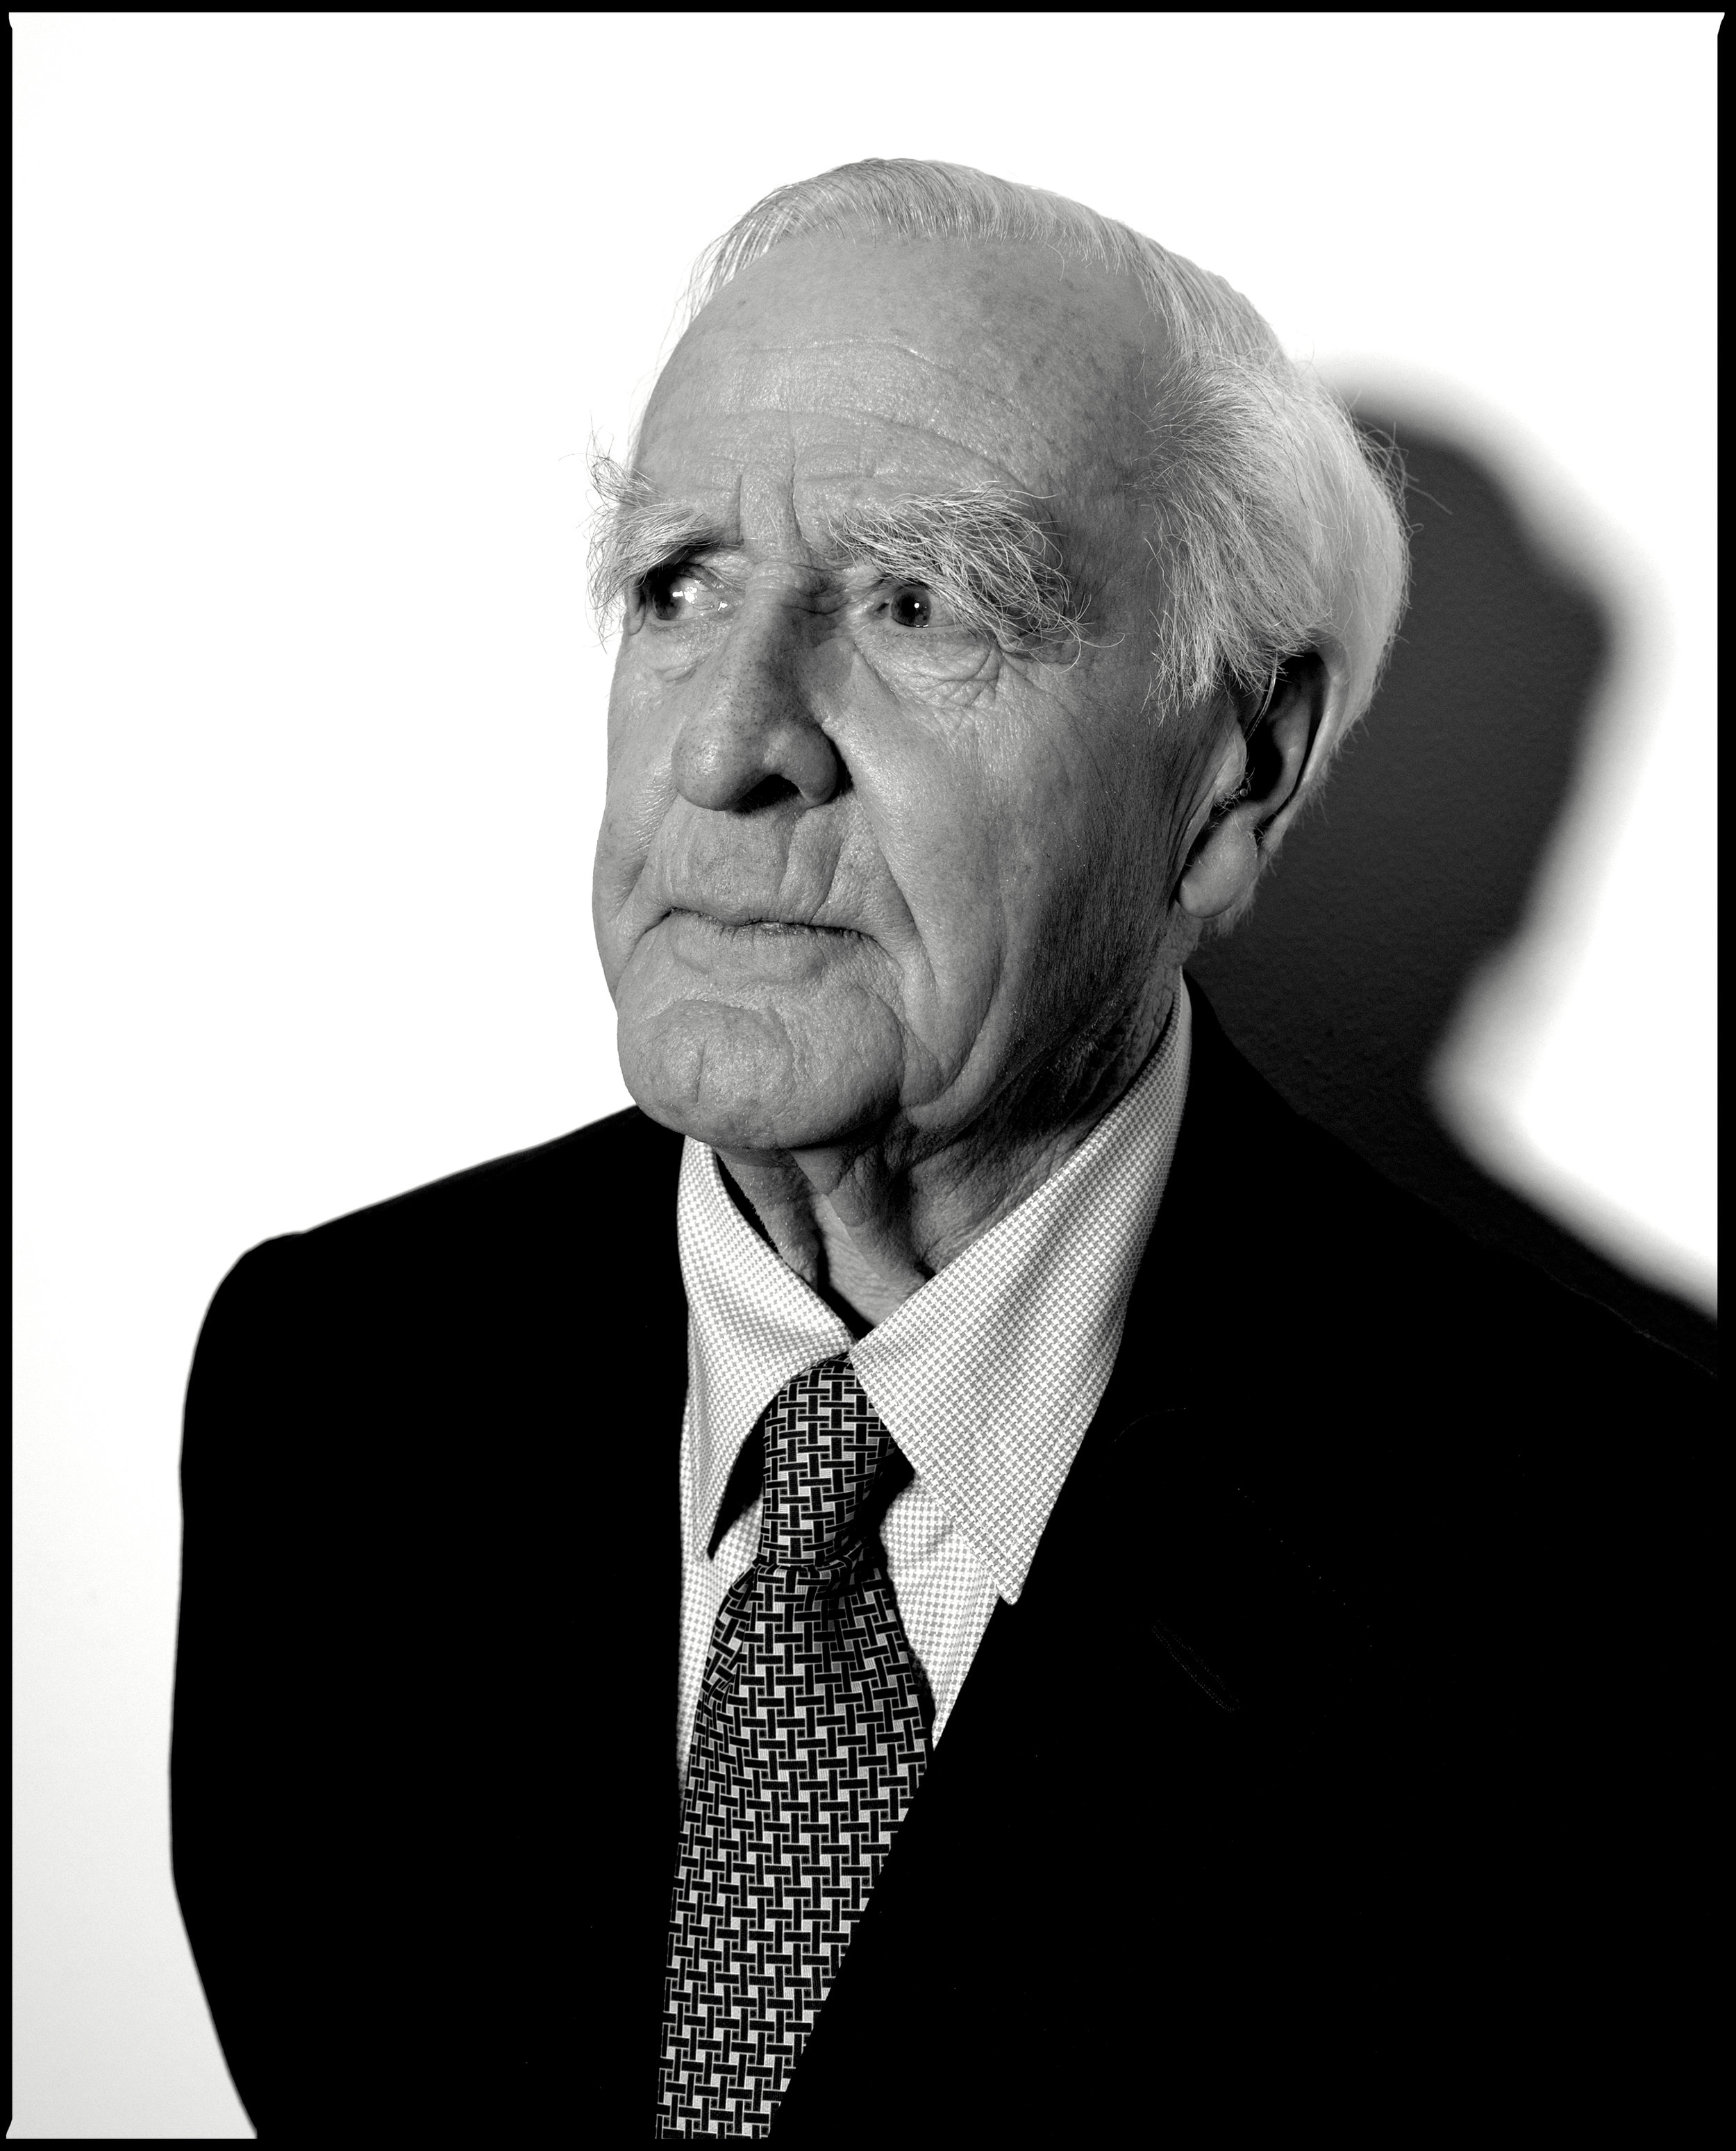 John le Carré - Author